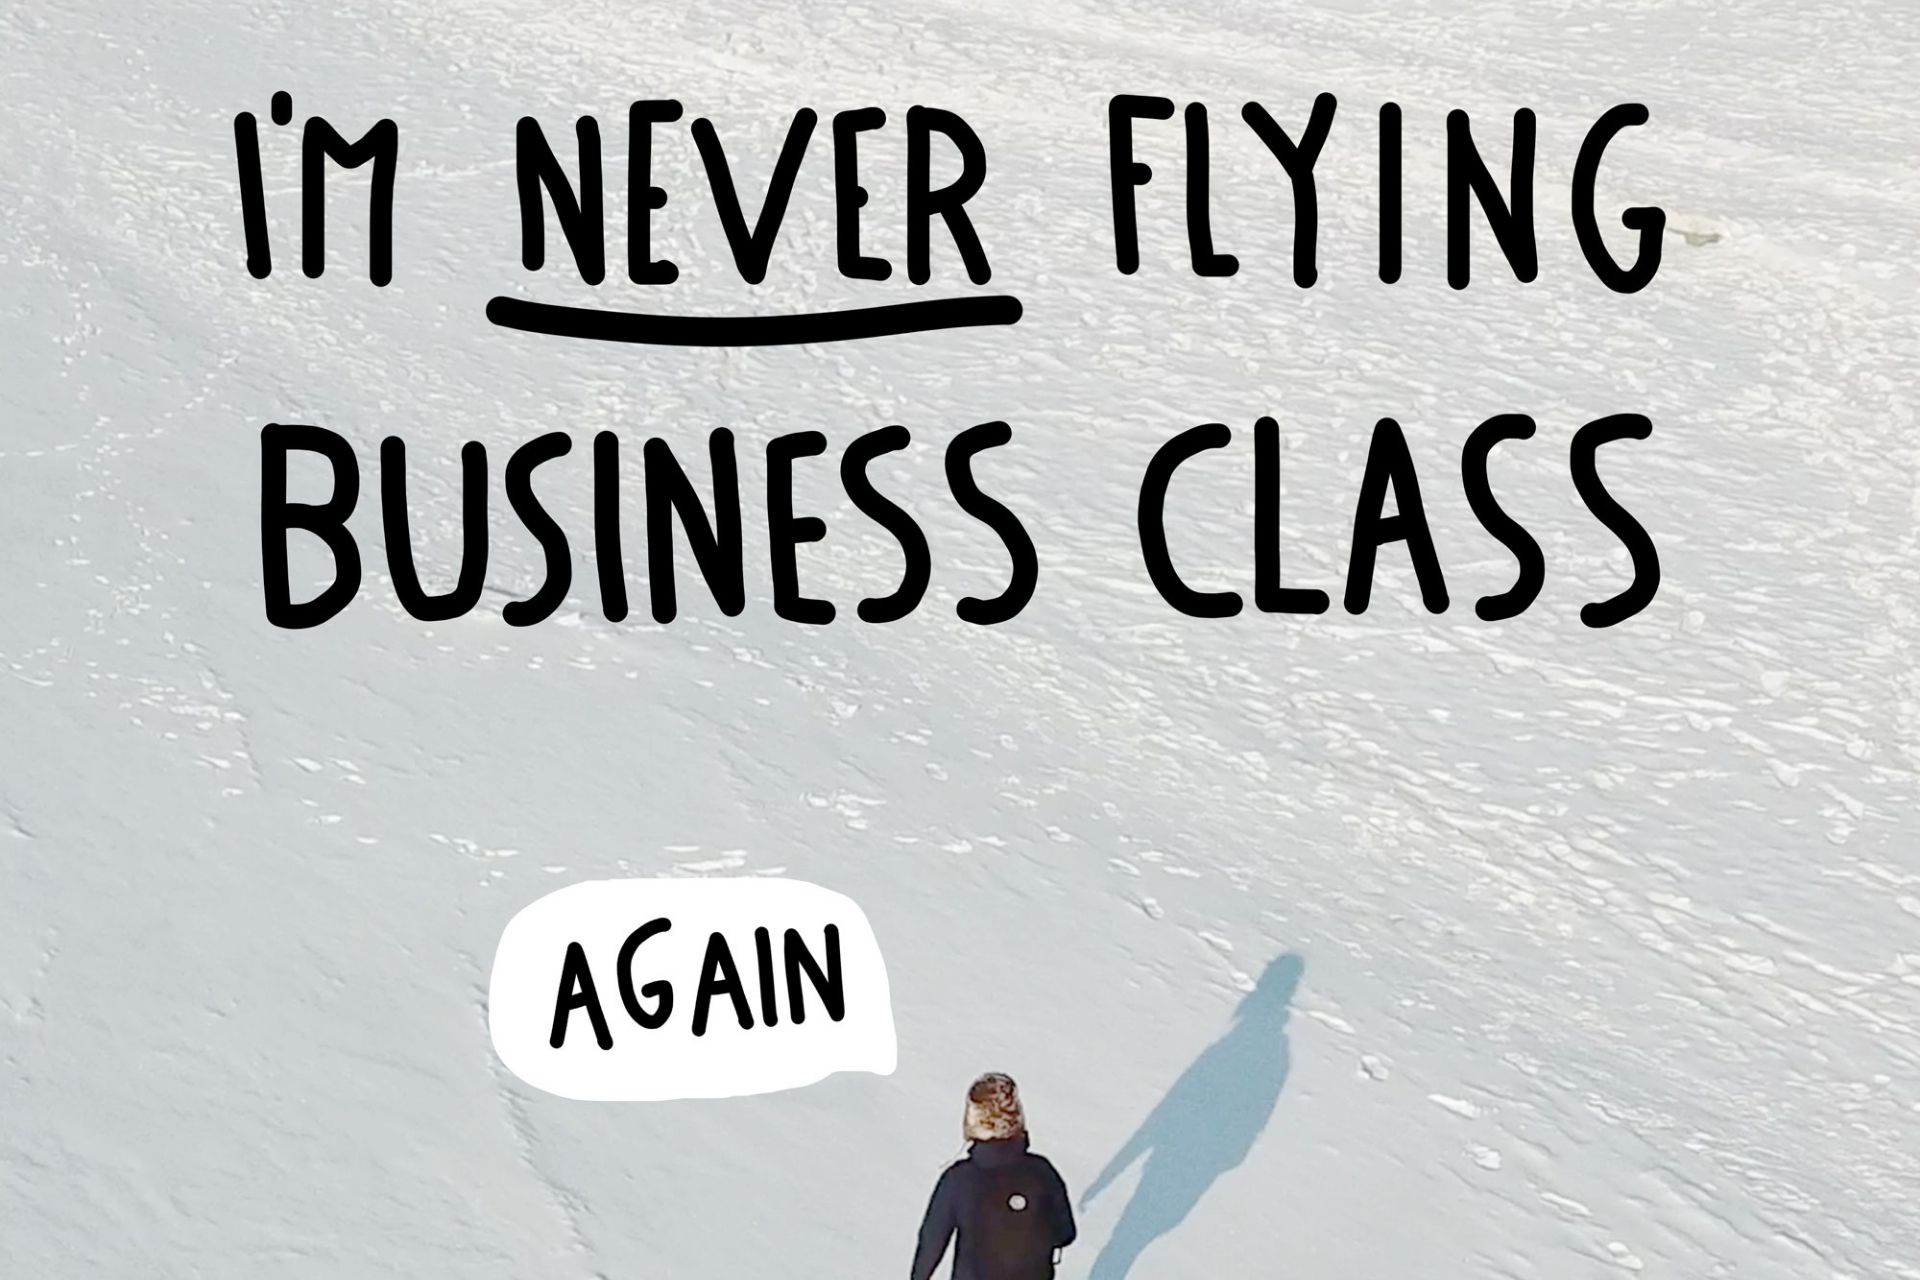 """Dave walking on snow during the Trans-Siberian journey """"I'm never flying business class again"""""""